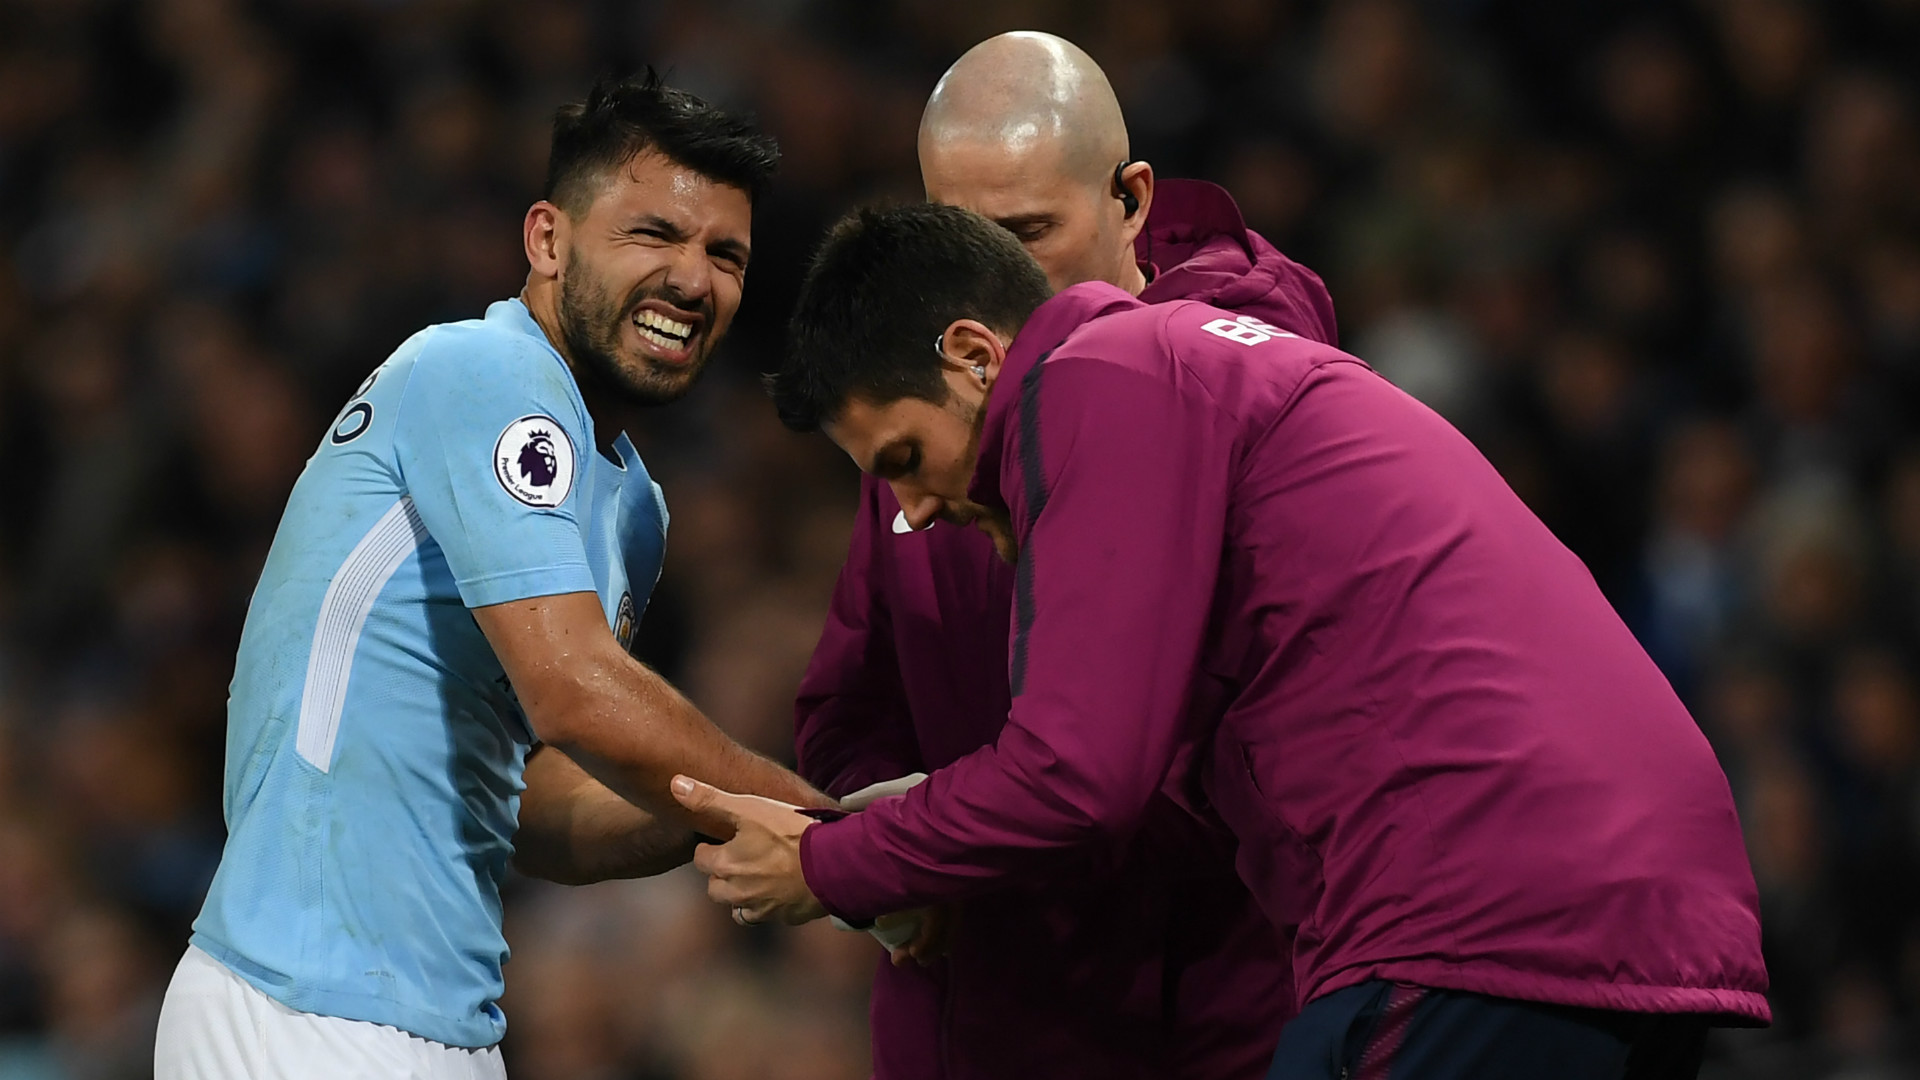 Manchester City's Sergio Aguero out for two weeks with knee injury